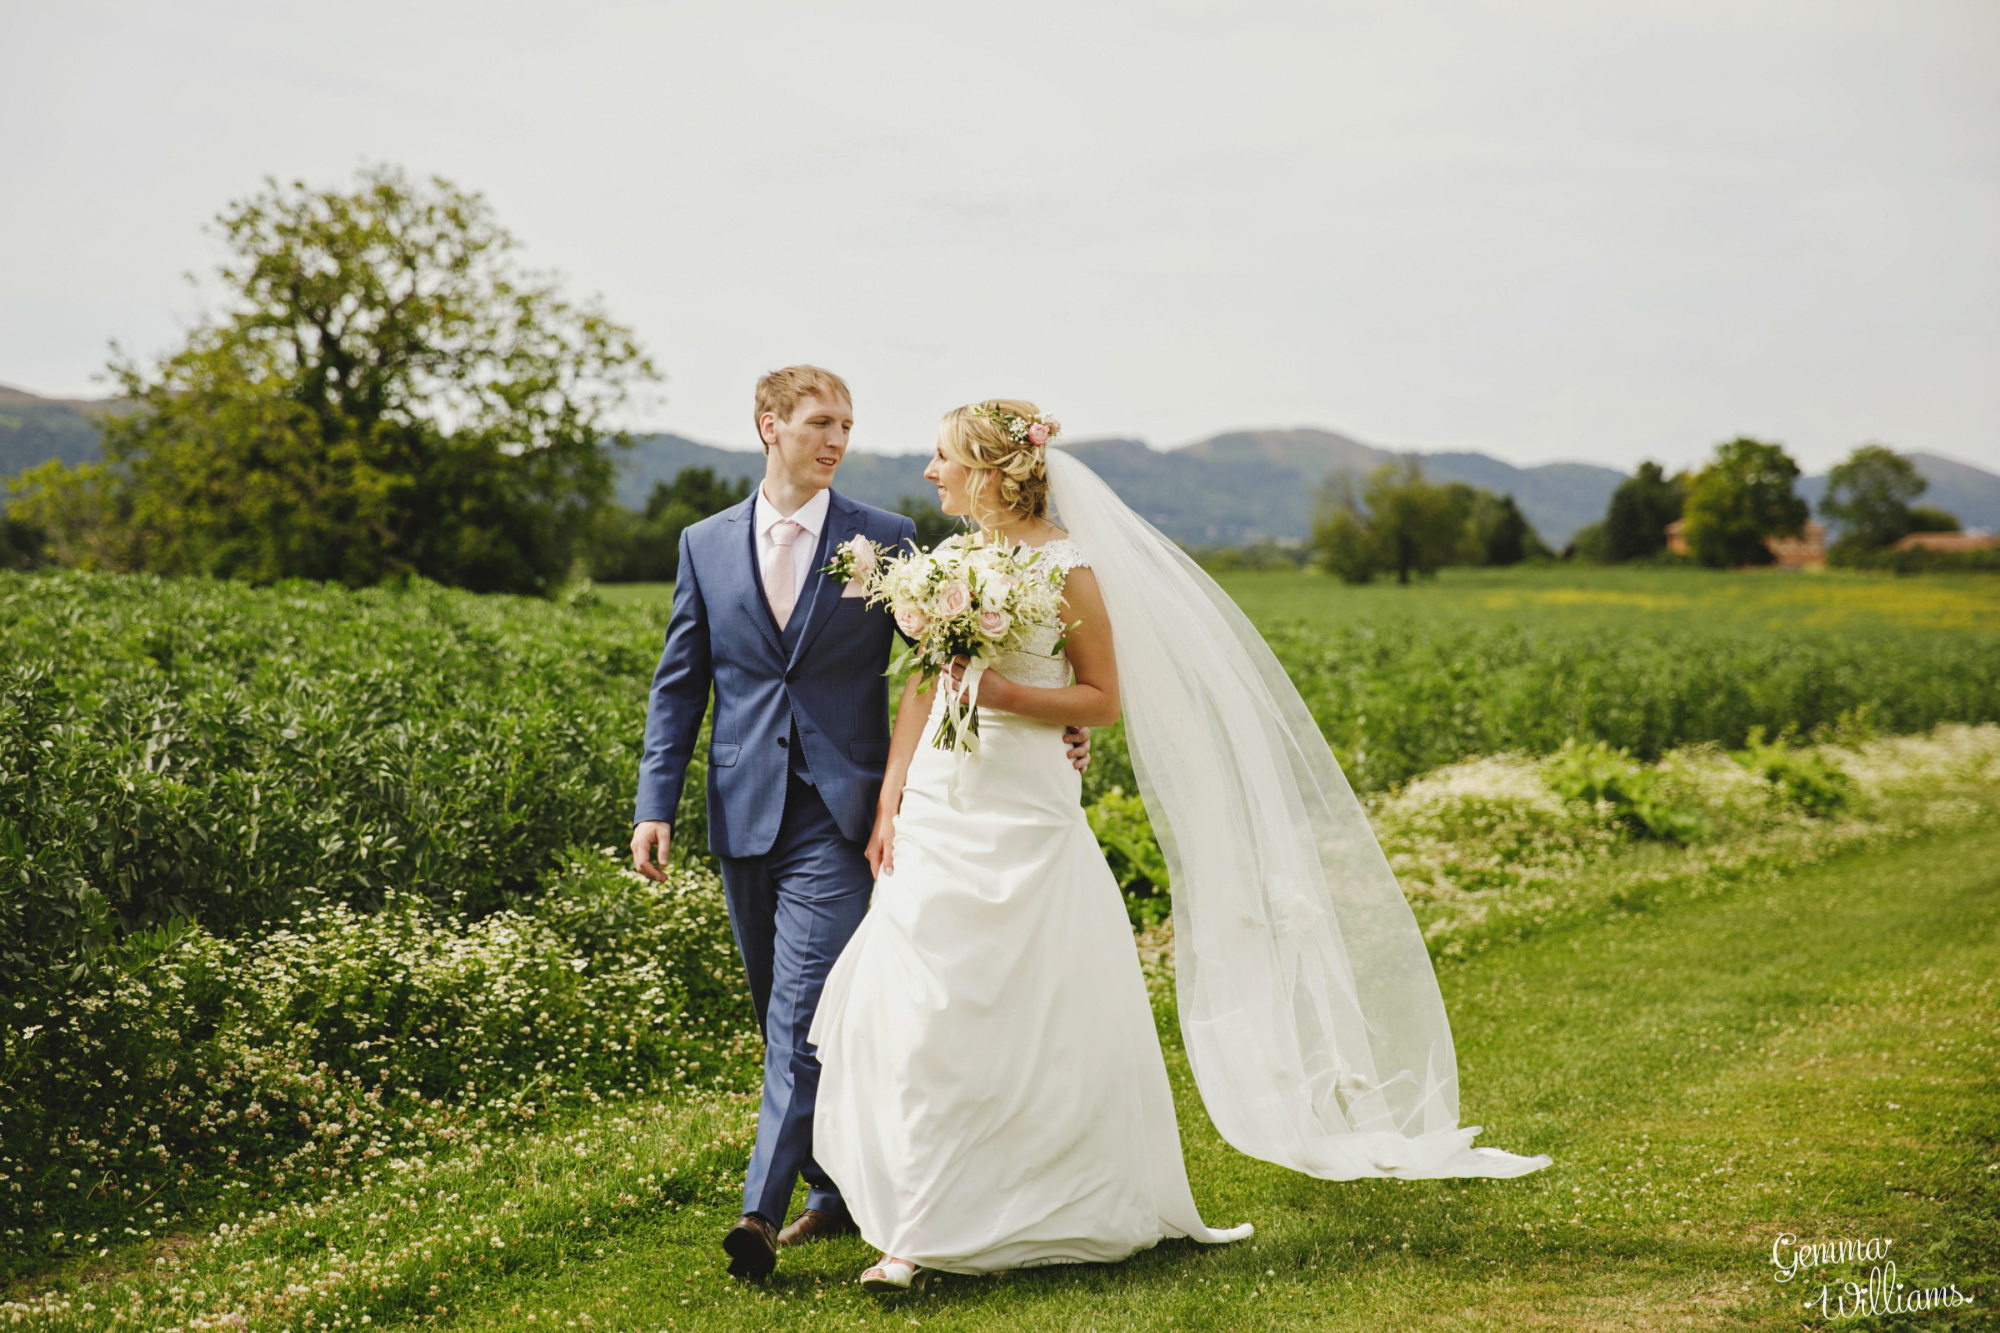 GemmaWilliamsPhotography_Weddings2018_0622.jpg